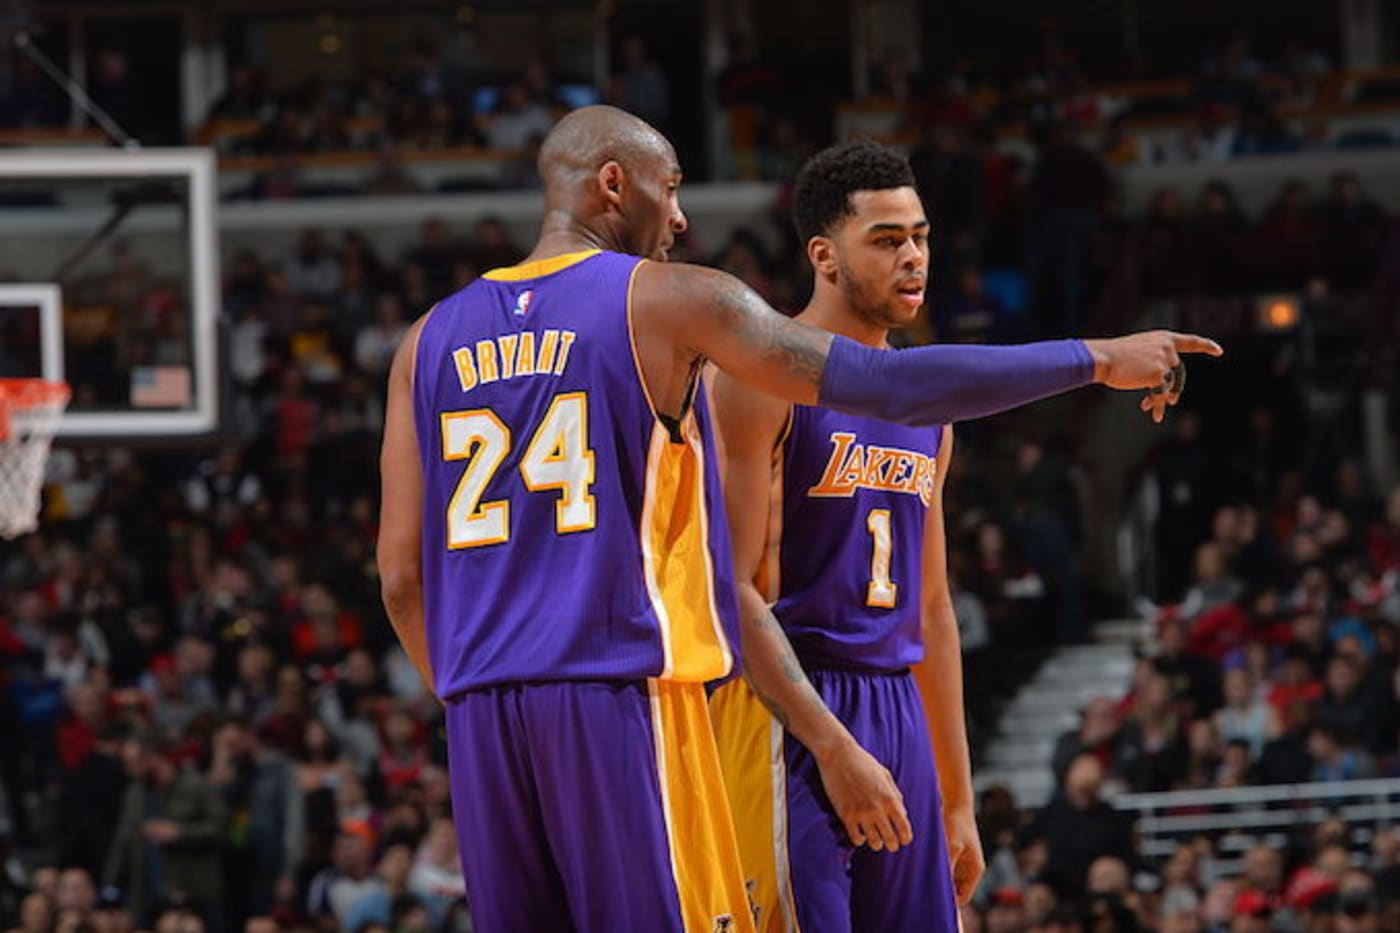 This is a picture of Kobe and D'Angelo.